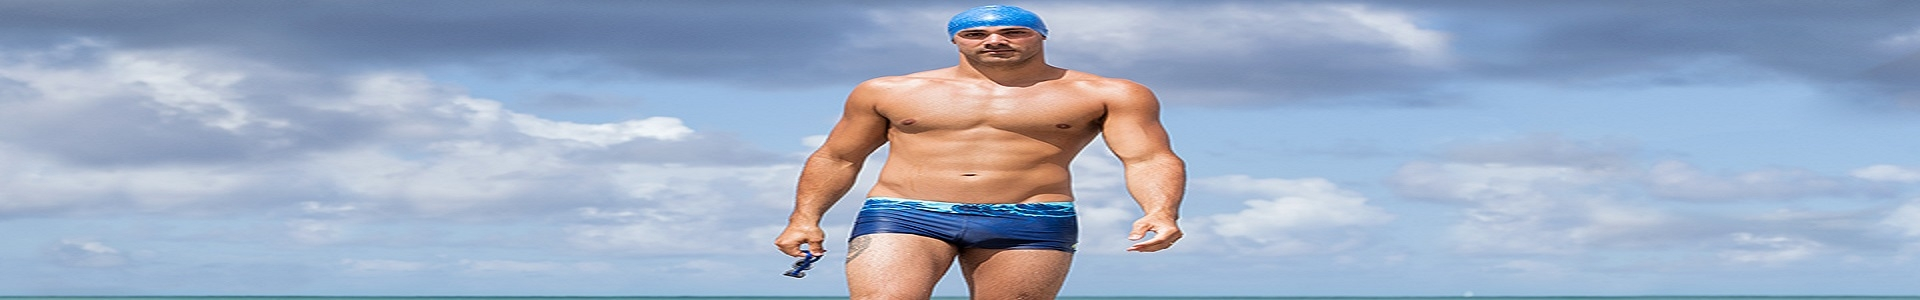 ExtraOffre Sport Banner Mens Clothing Swimwear Category